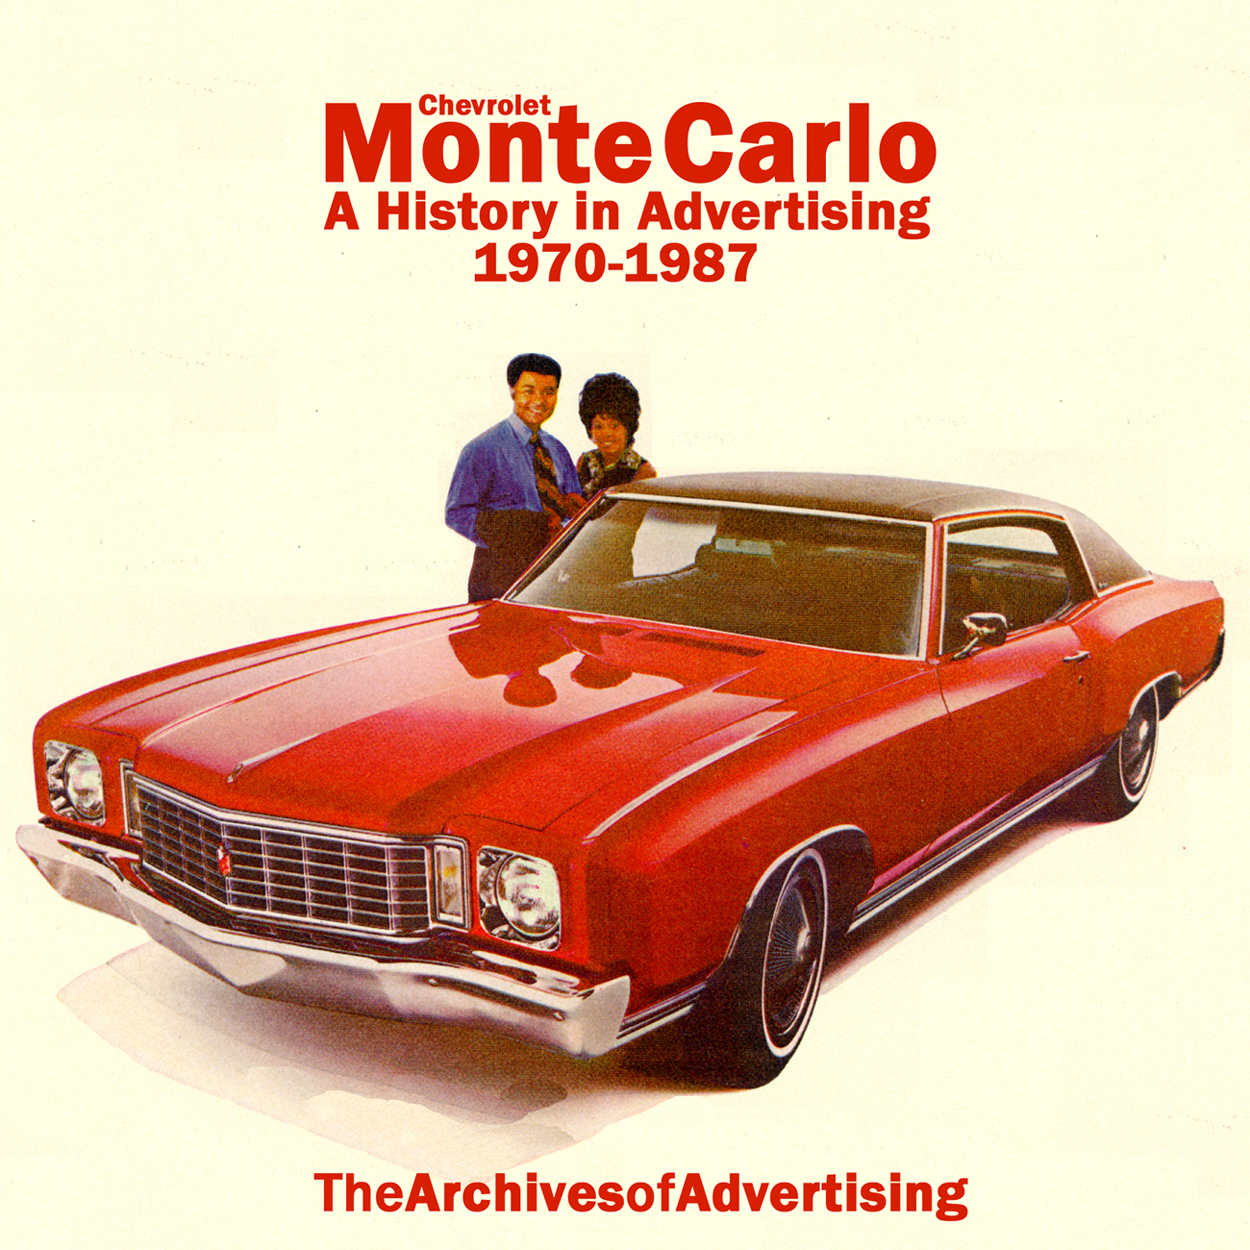 1970 1971 1972 1973 1974 1975 1976 1977-1987 Chevrolet Monte Carlo ad CD 90+ ads